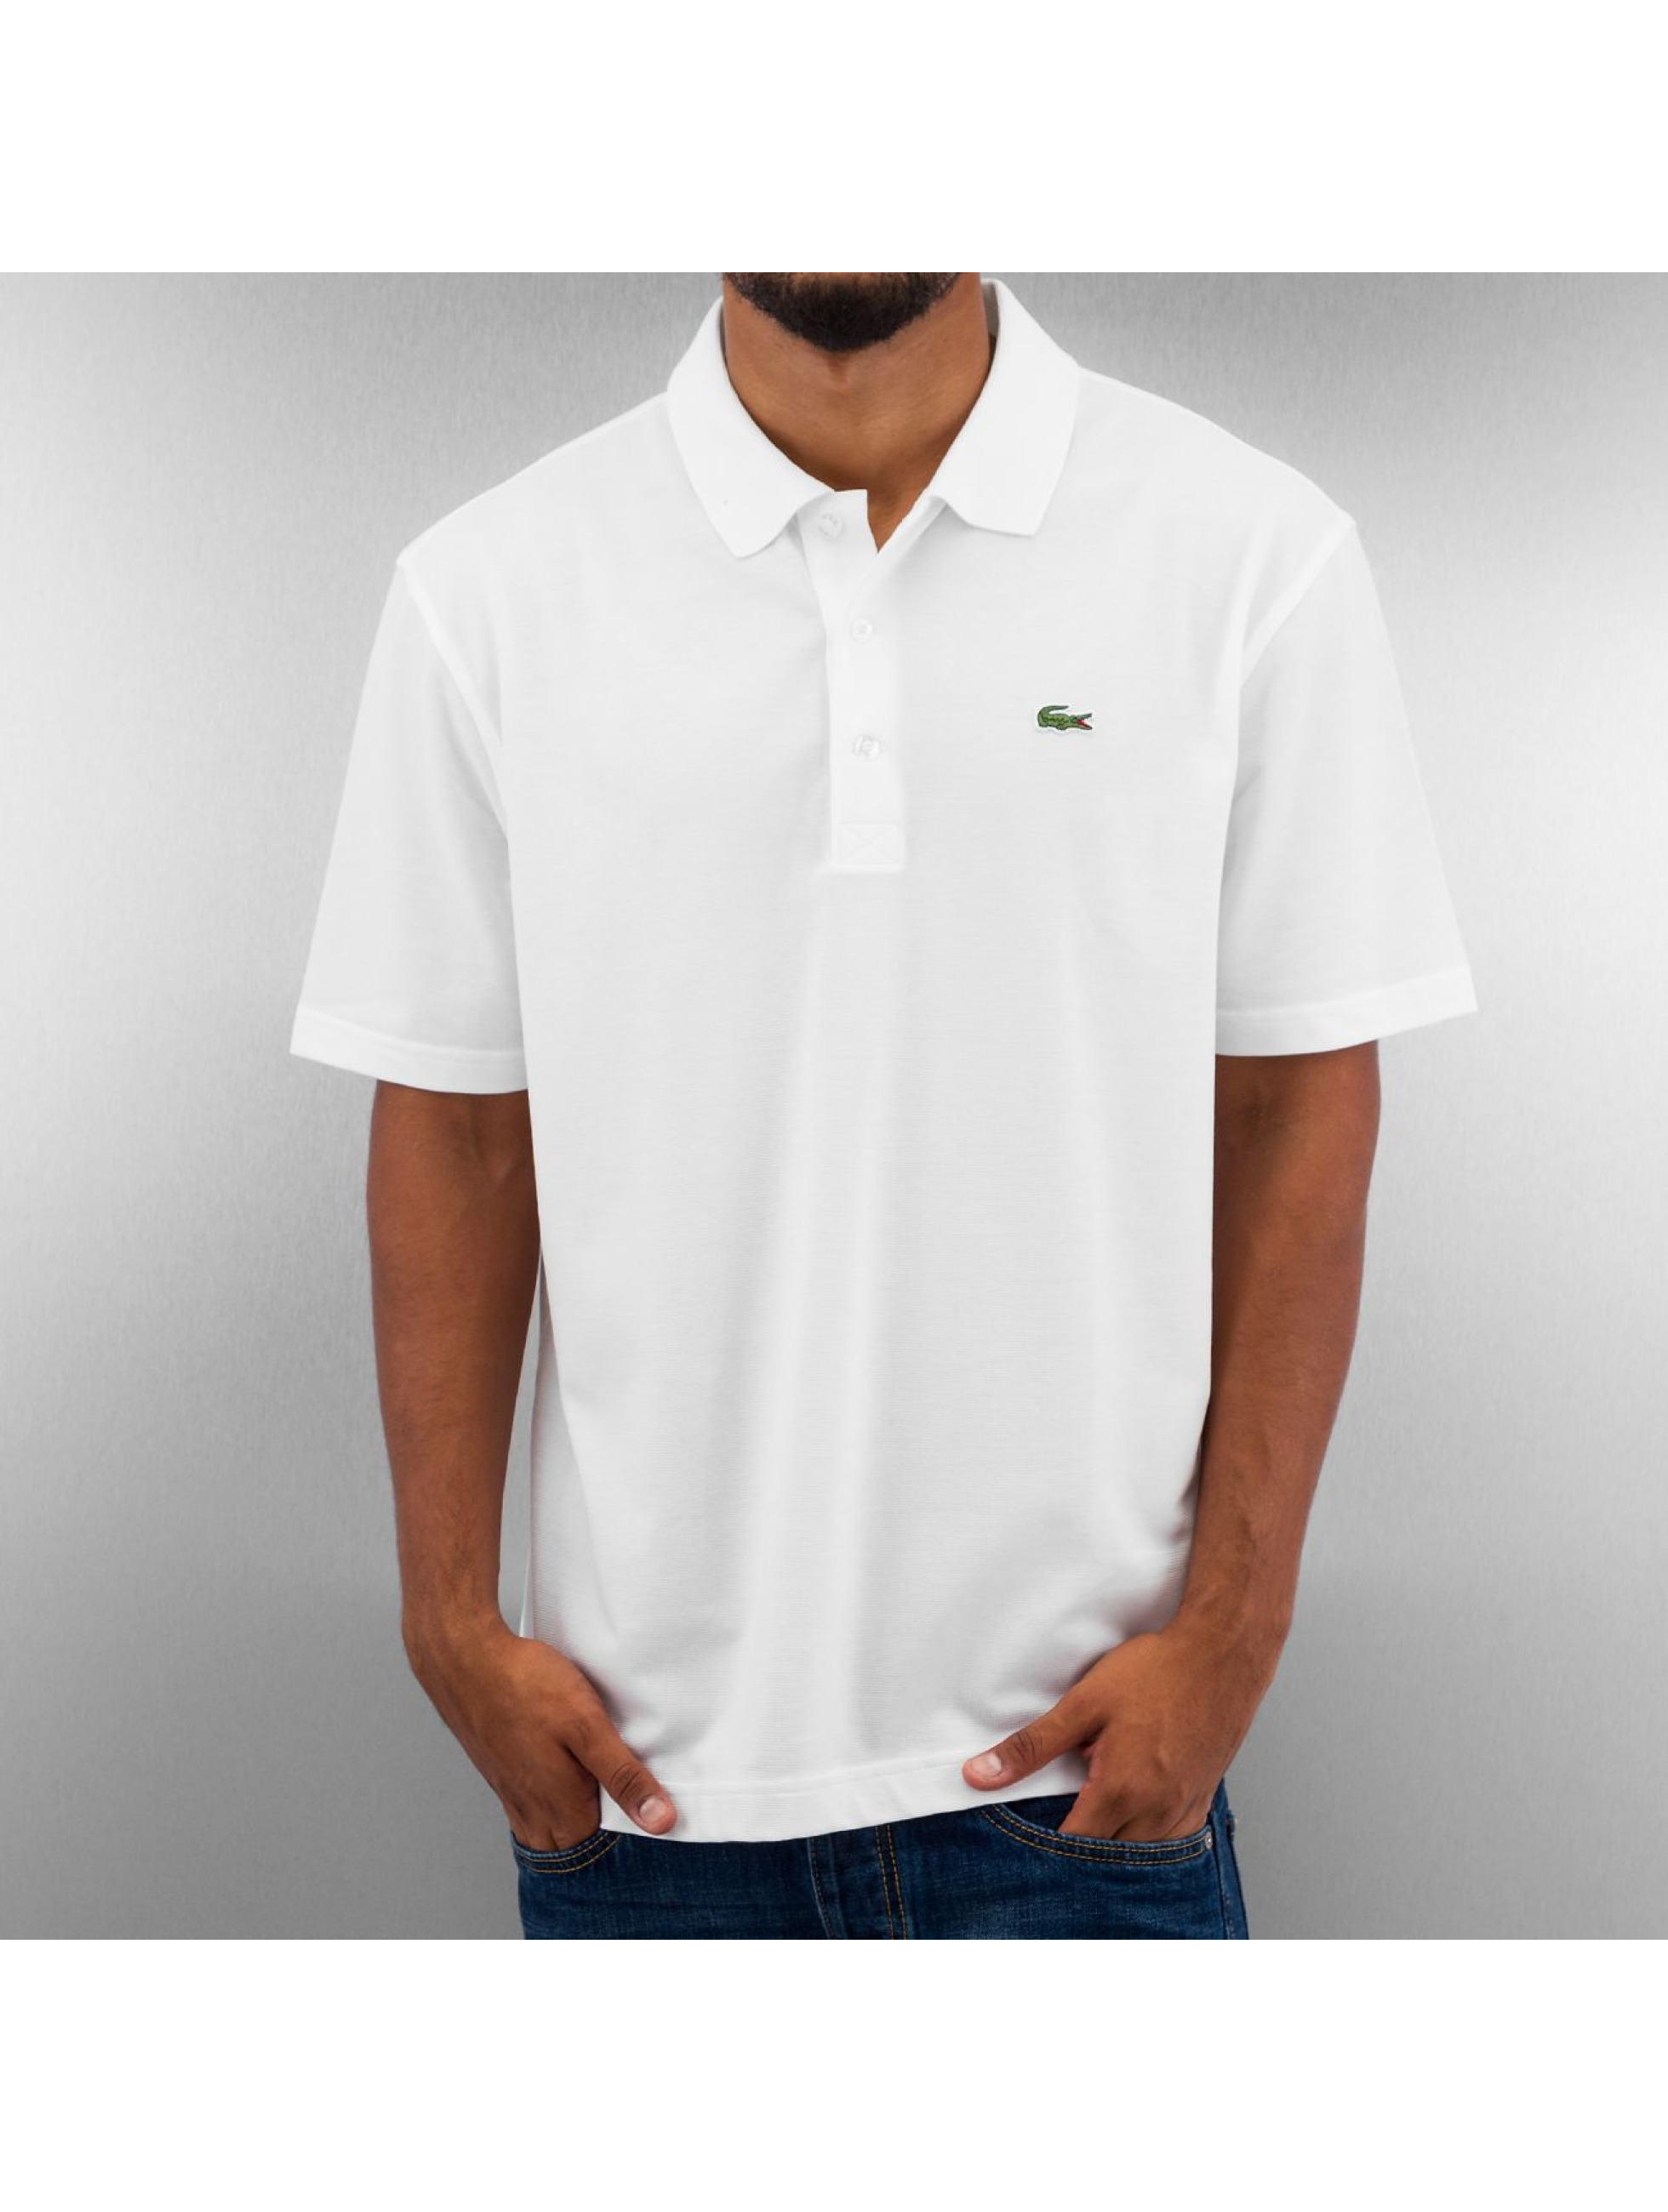 Lacoste Classic poloshirt Classic wit